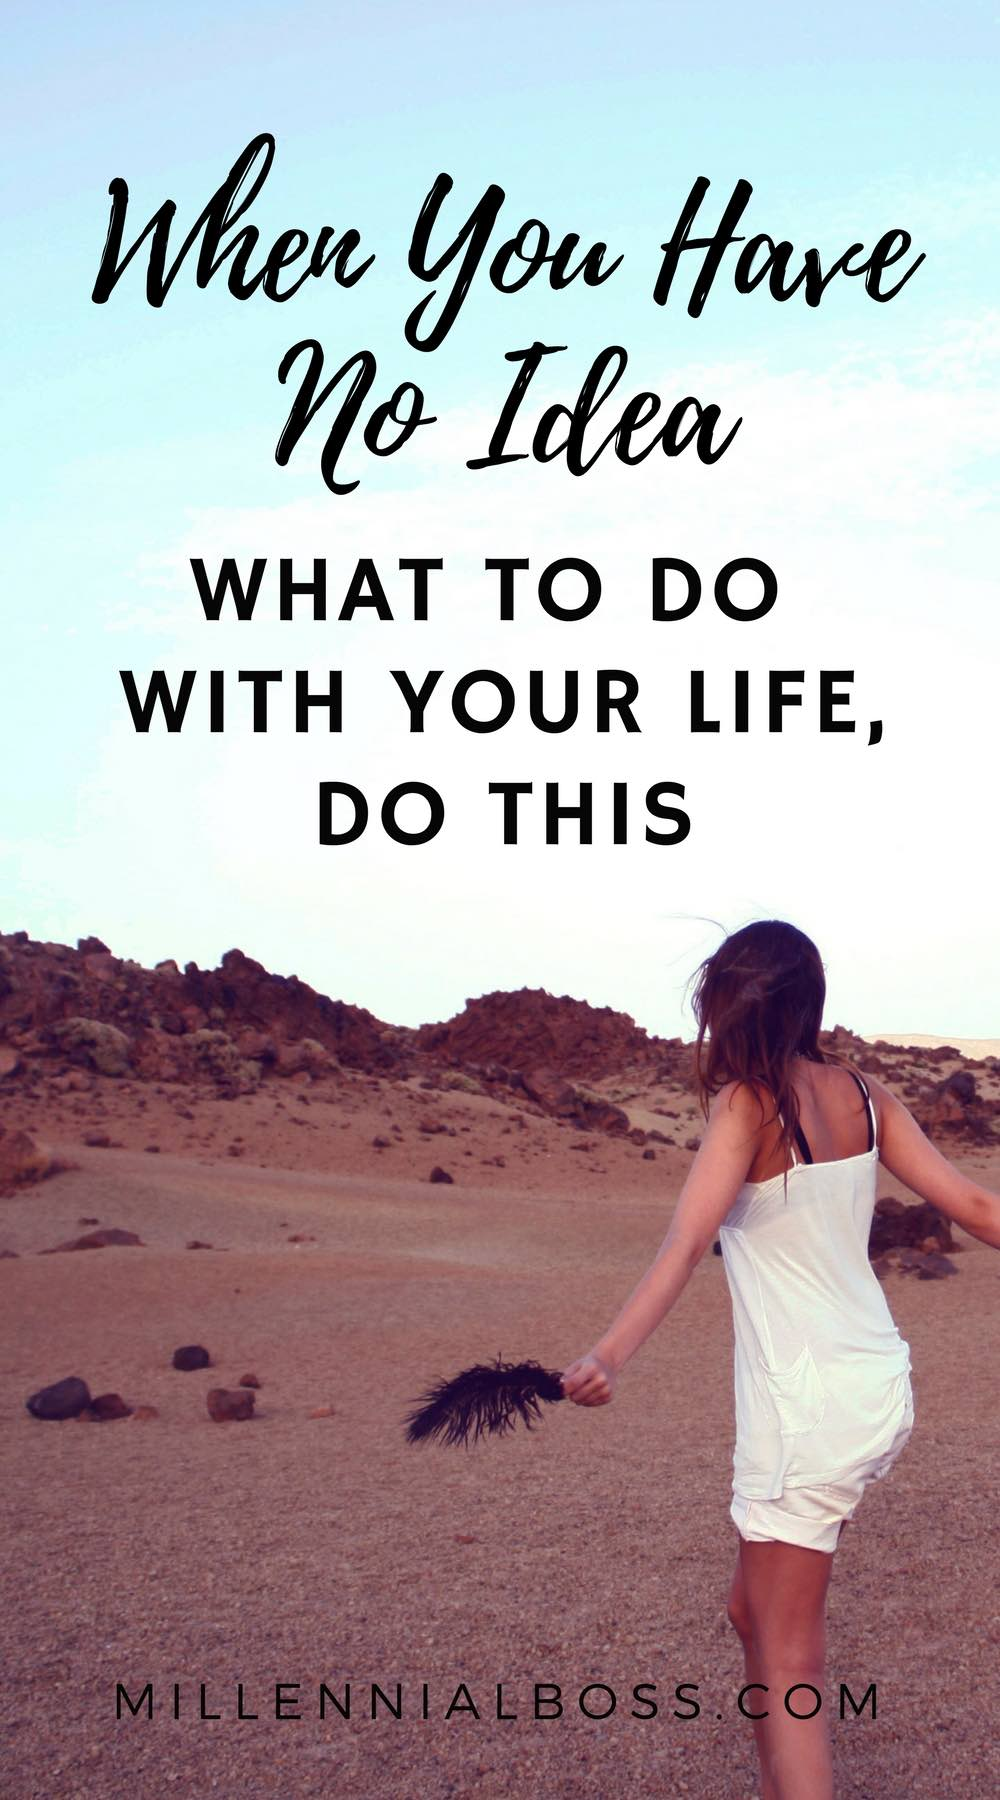 No idea what I'm doing and Quarter life crisis sound like you? Read this post. Early Retirement Police need not apply.